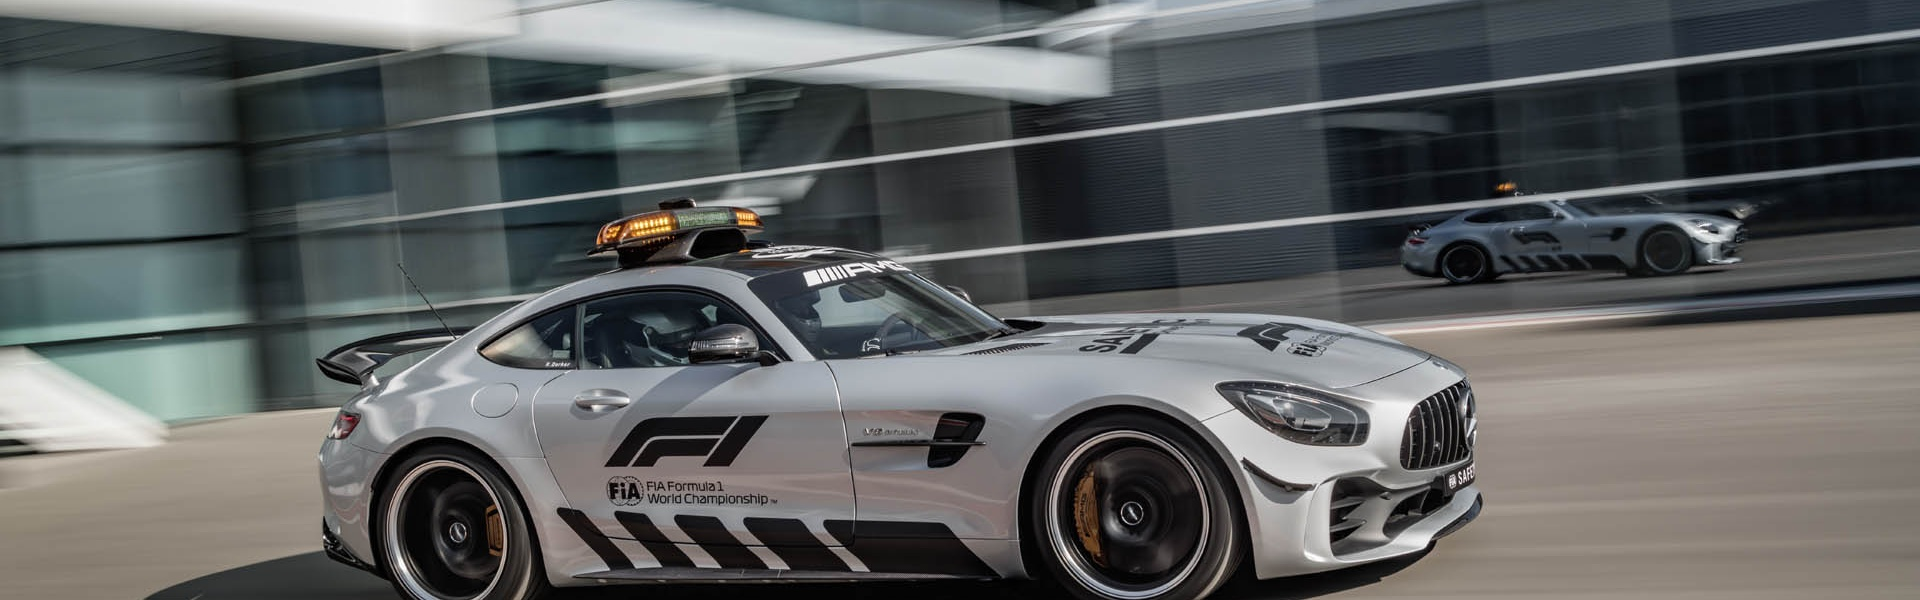 mercedes-amg-gt-r-f1-safety-car-02.jpg